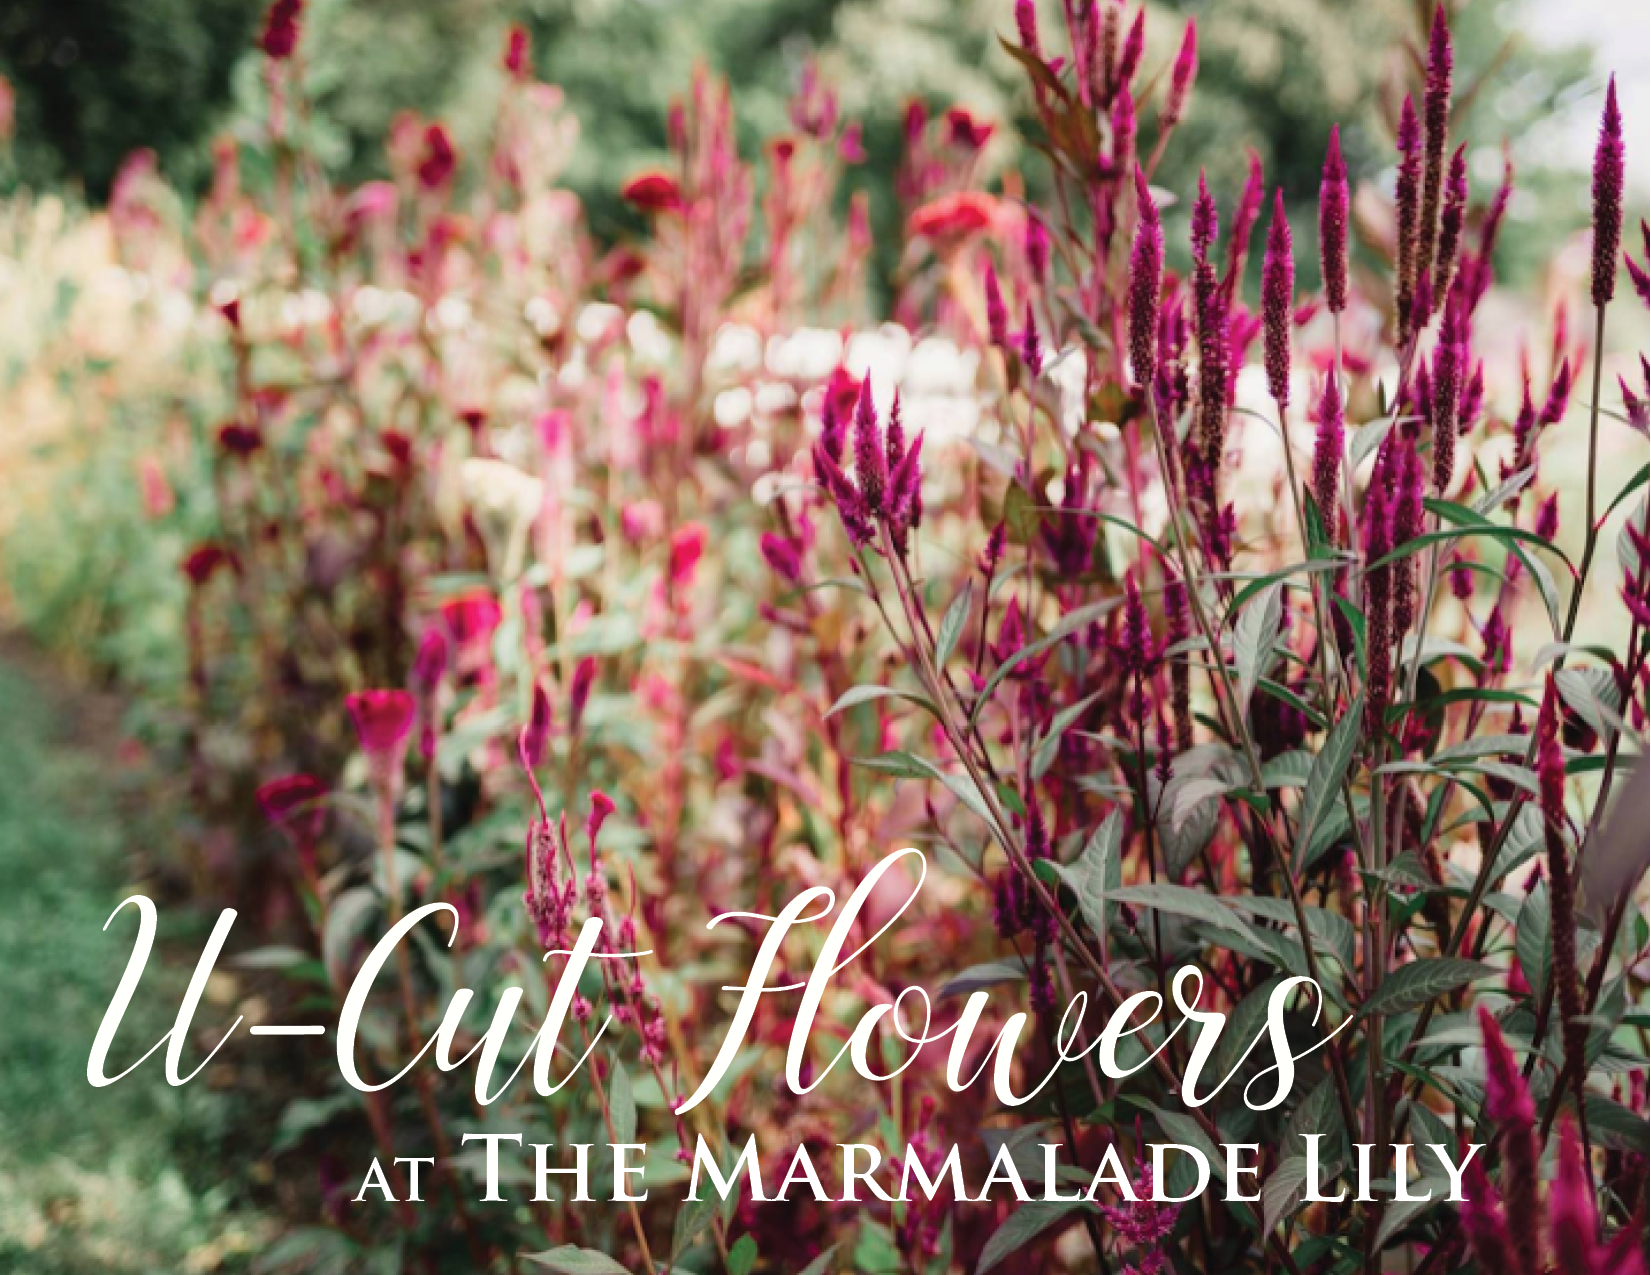 Join us for u-cut flowers in the gardens!  At The Marmalade Lily, we have a weekly selection of seasonal flowers available. You will be greeted with a basket, clippers, and a tour of the fresh blooms available! Bring your favorite vase to arrange your flowers or have your bouquet wrapped to go. Pricing is per stem and typically ranges from $0.50 to $4.00. Parking is complimentary.  Reservations not required, but please email or call ahead for groups larger than 6 (themarmaladelily@ gmail.com/5136046561 ).  Our projected availability is updated weekly on Mondays.  Projected Availability: Ammi Babies Breath Caryopteris Dill Godetia Gomphrena Hydrangea Lisianthus Mountain Mint Ninebark Rudbeckia Snapdragons Sunflowers Veronica Zinnia  And during the month of July, take a photo at The Marmalade U-Cuts, post it to Facebook or Instagram using the hashtag  #themarmaladelilyflowers , and you will be entered into a drawing for a $15 gift card to a future u-cut event!